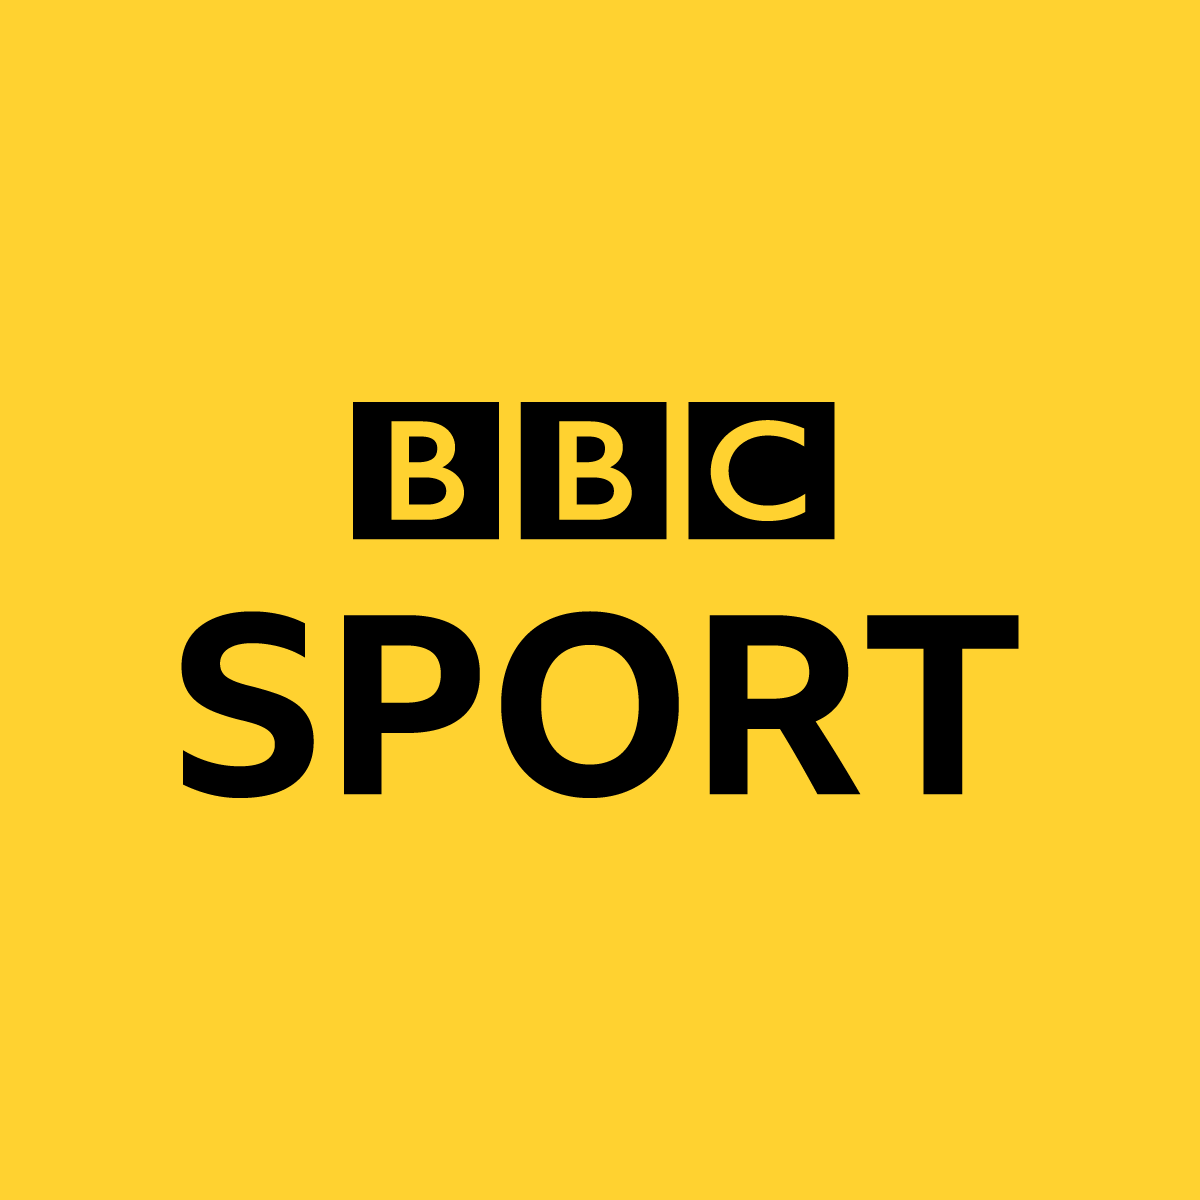 Watch Nick Kyrgios throw his racquet and a chair before walking off court and forfeiting match - BBC Sport thumbnail